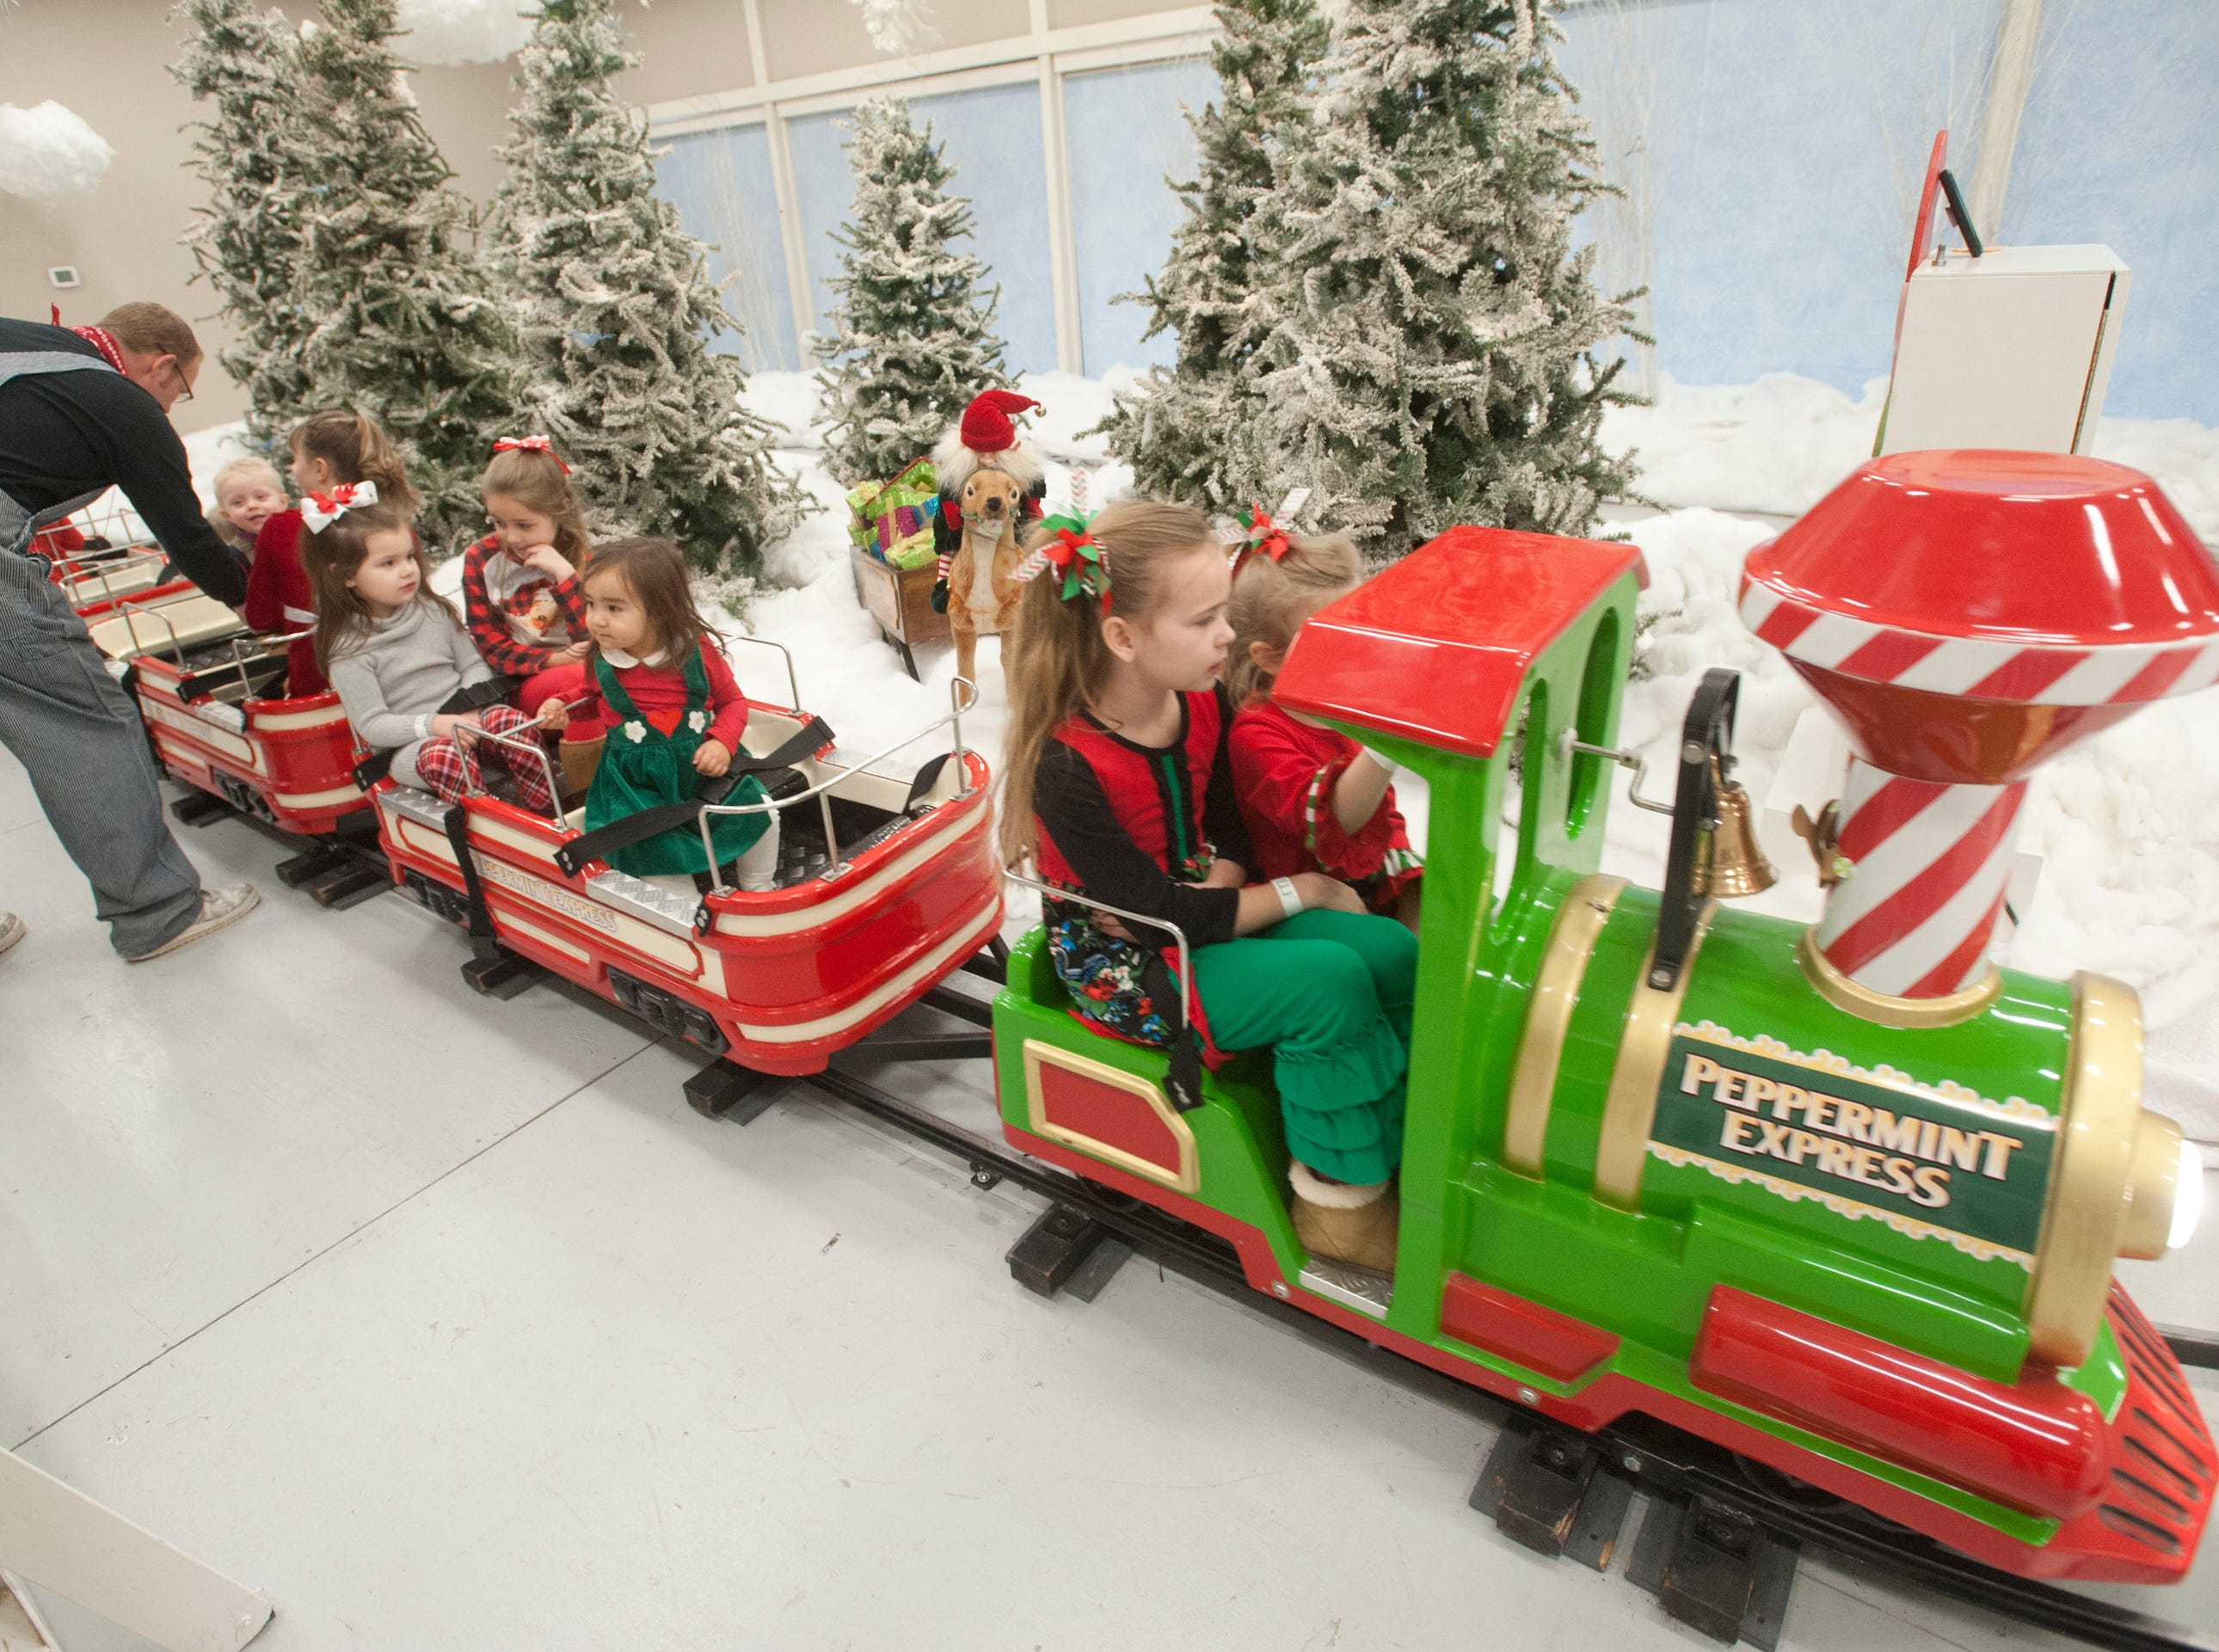 """A trainman helps passengers into Peppermint Express train cars at the Galt House Hotel's sold-out event,  """"Breakfast with Santa.""""22 December 2018"""